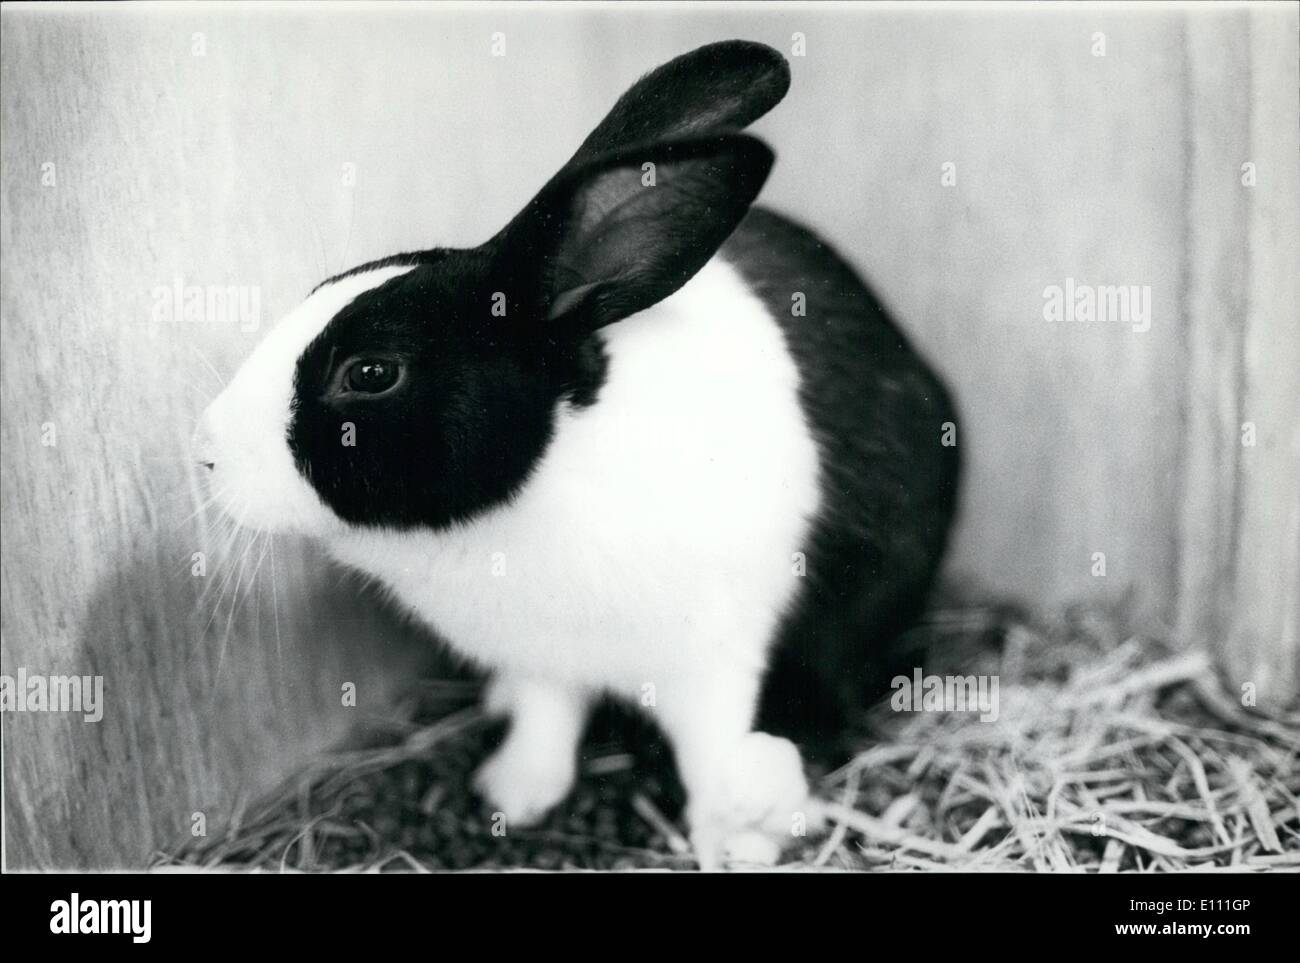 Jan. 01, 1975 - ''Panda'' Rabbit Produced In Japan.: After experimenting with six different cross-breedings, Mr. Shigeo Yoda, a - Stock Image